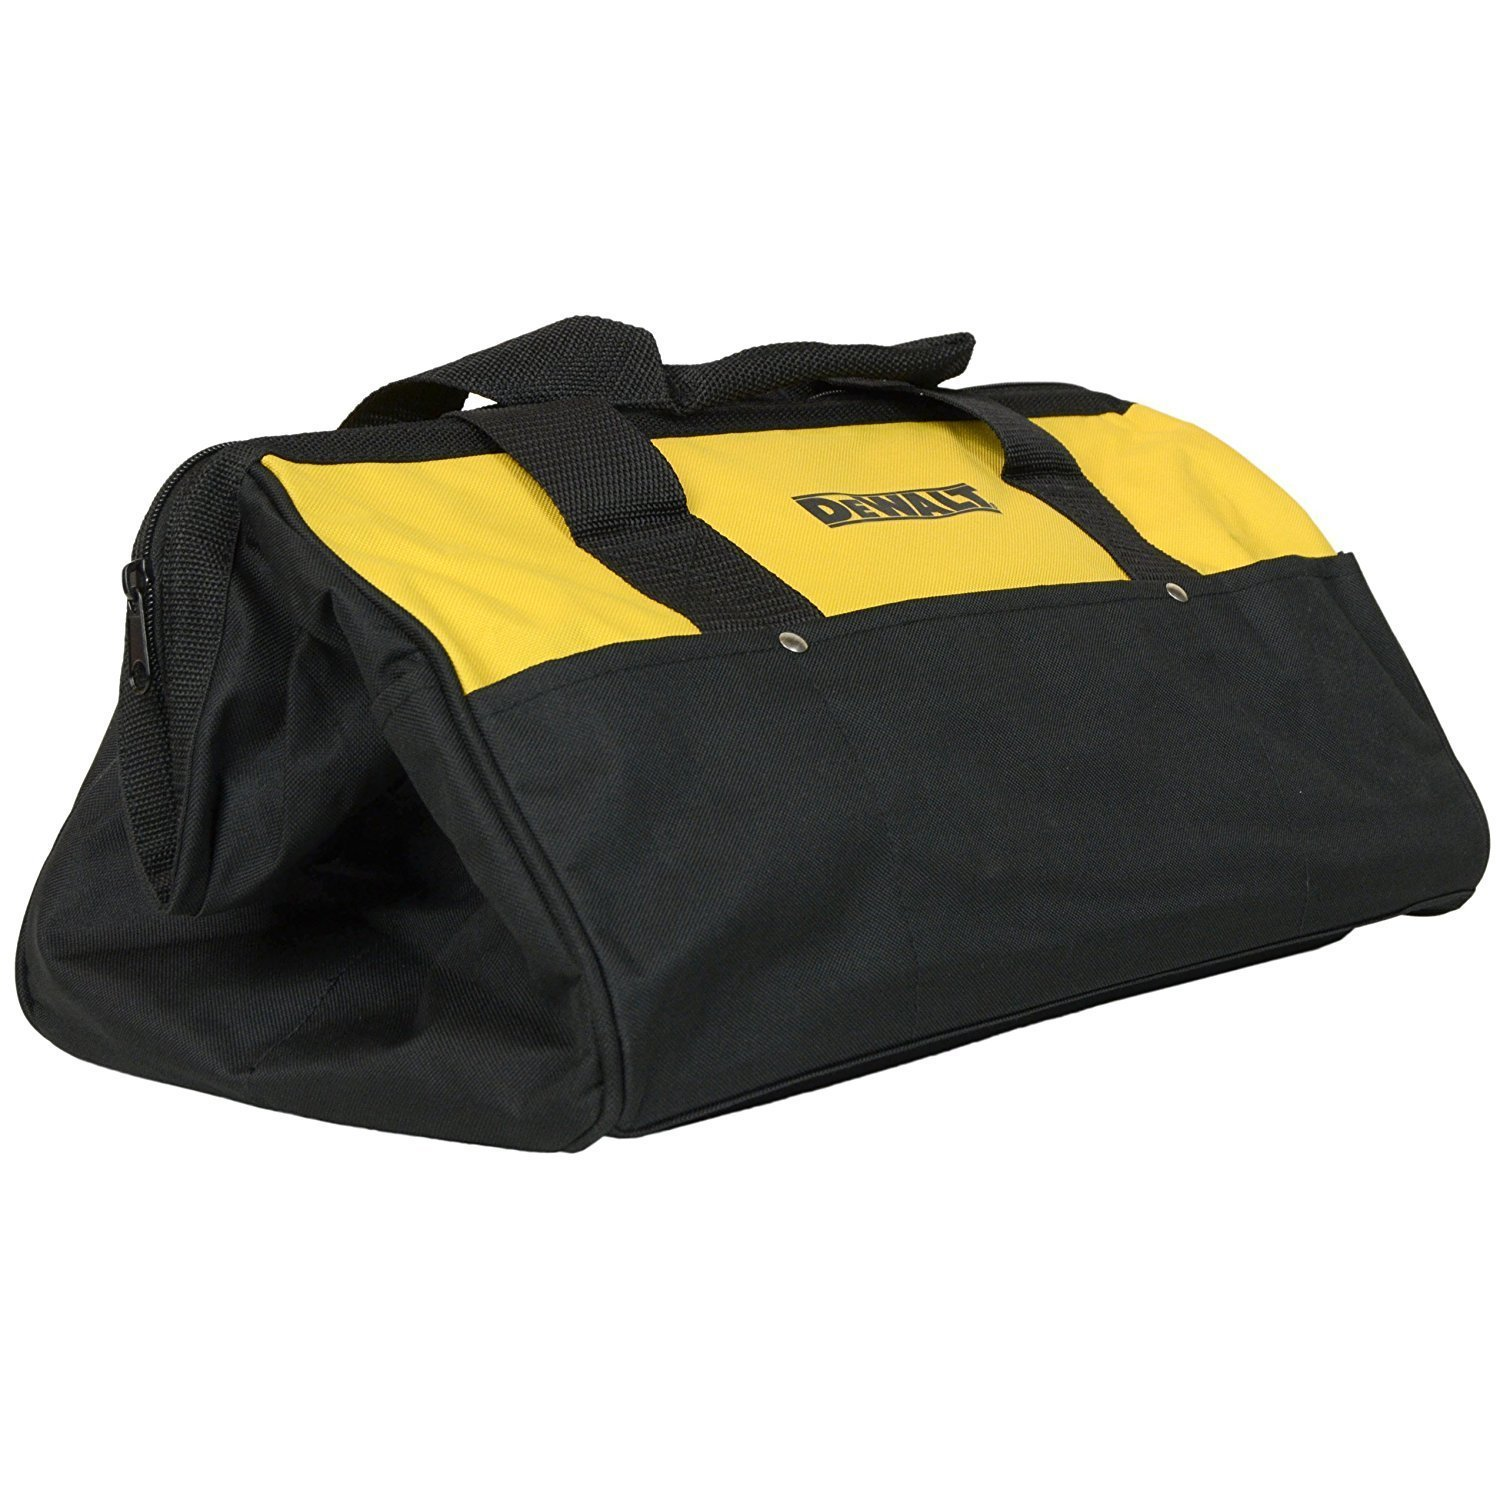 "Dewalt 15"" Medium Heavy Duty Contractor Tool Bag (629053-00)"